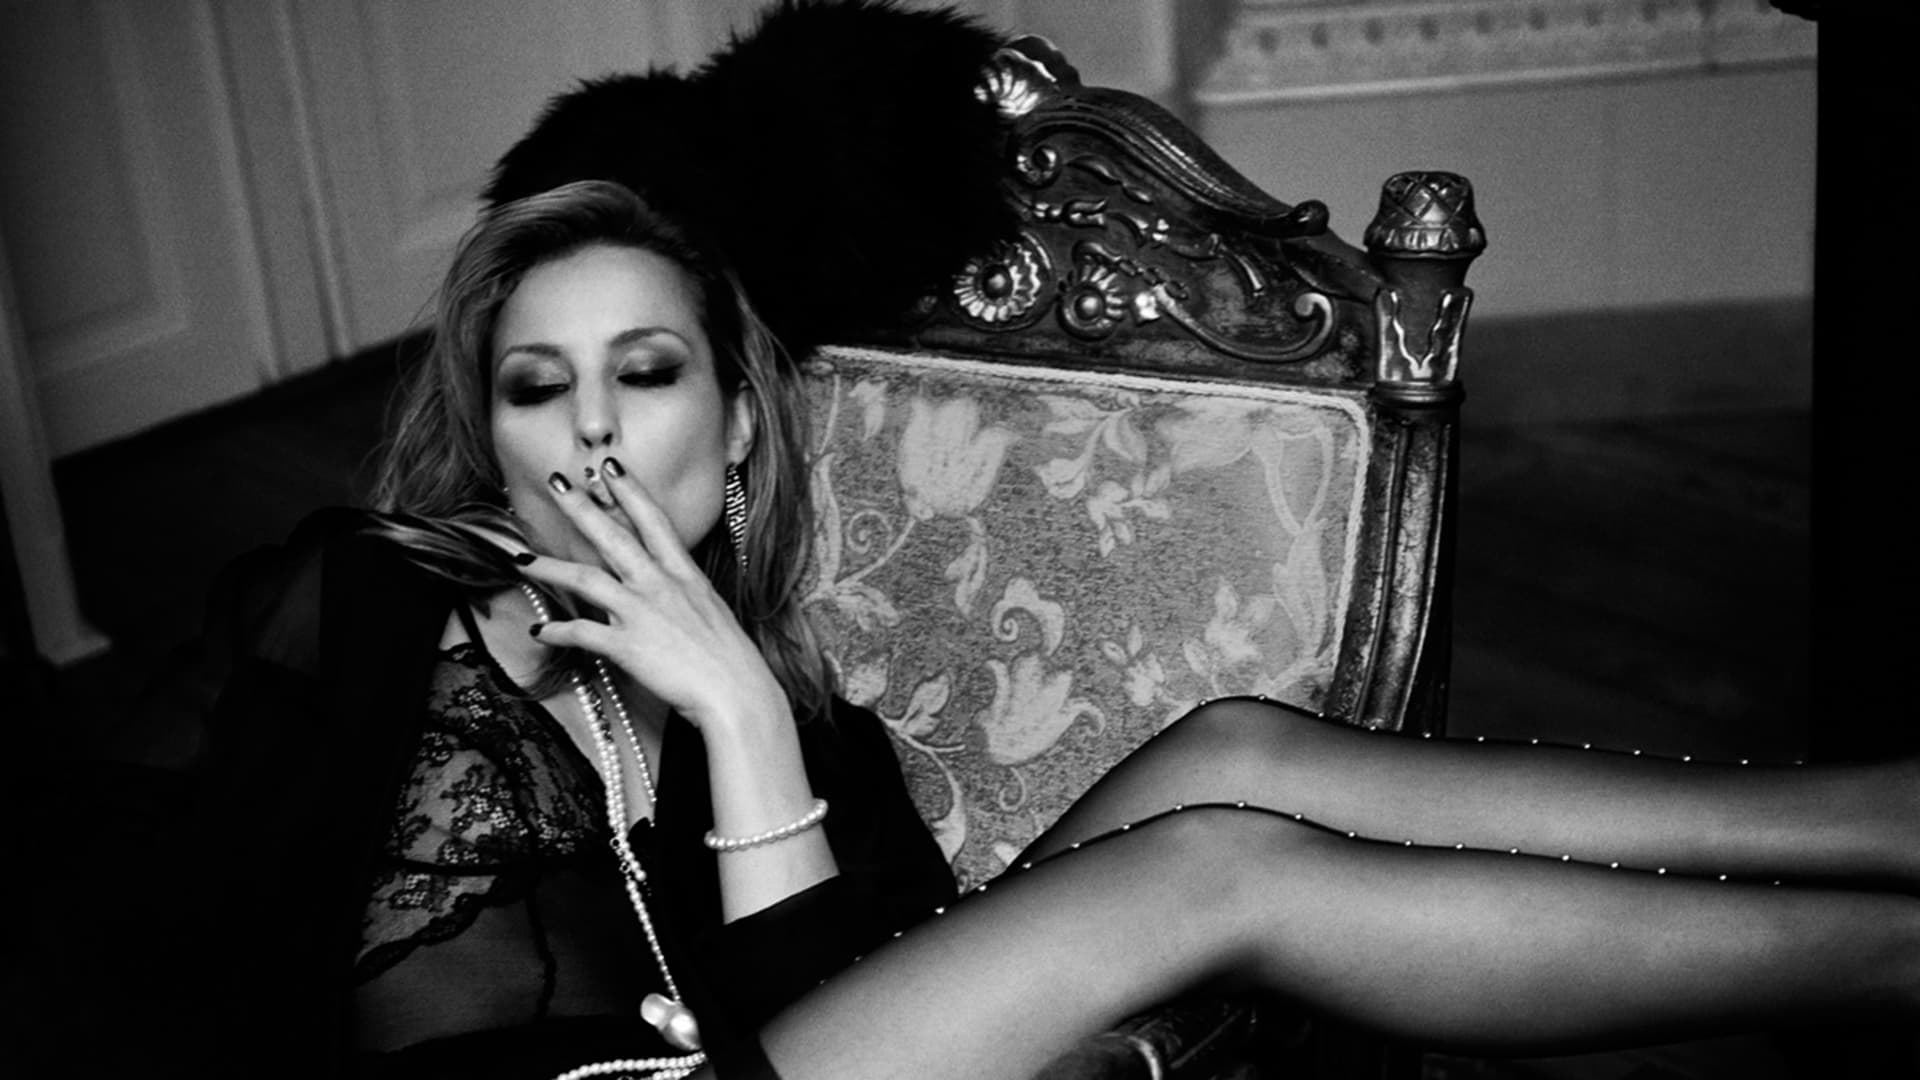 Noomi Rapace black and white image